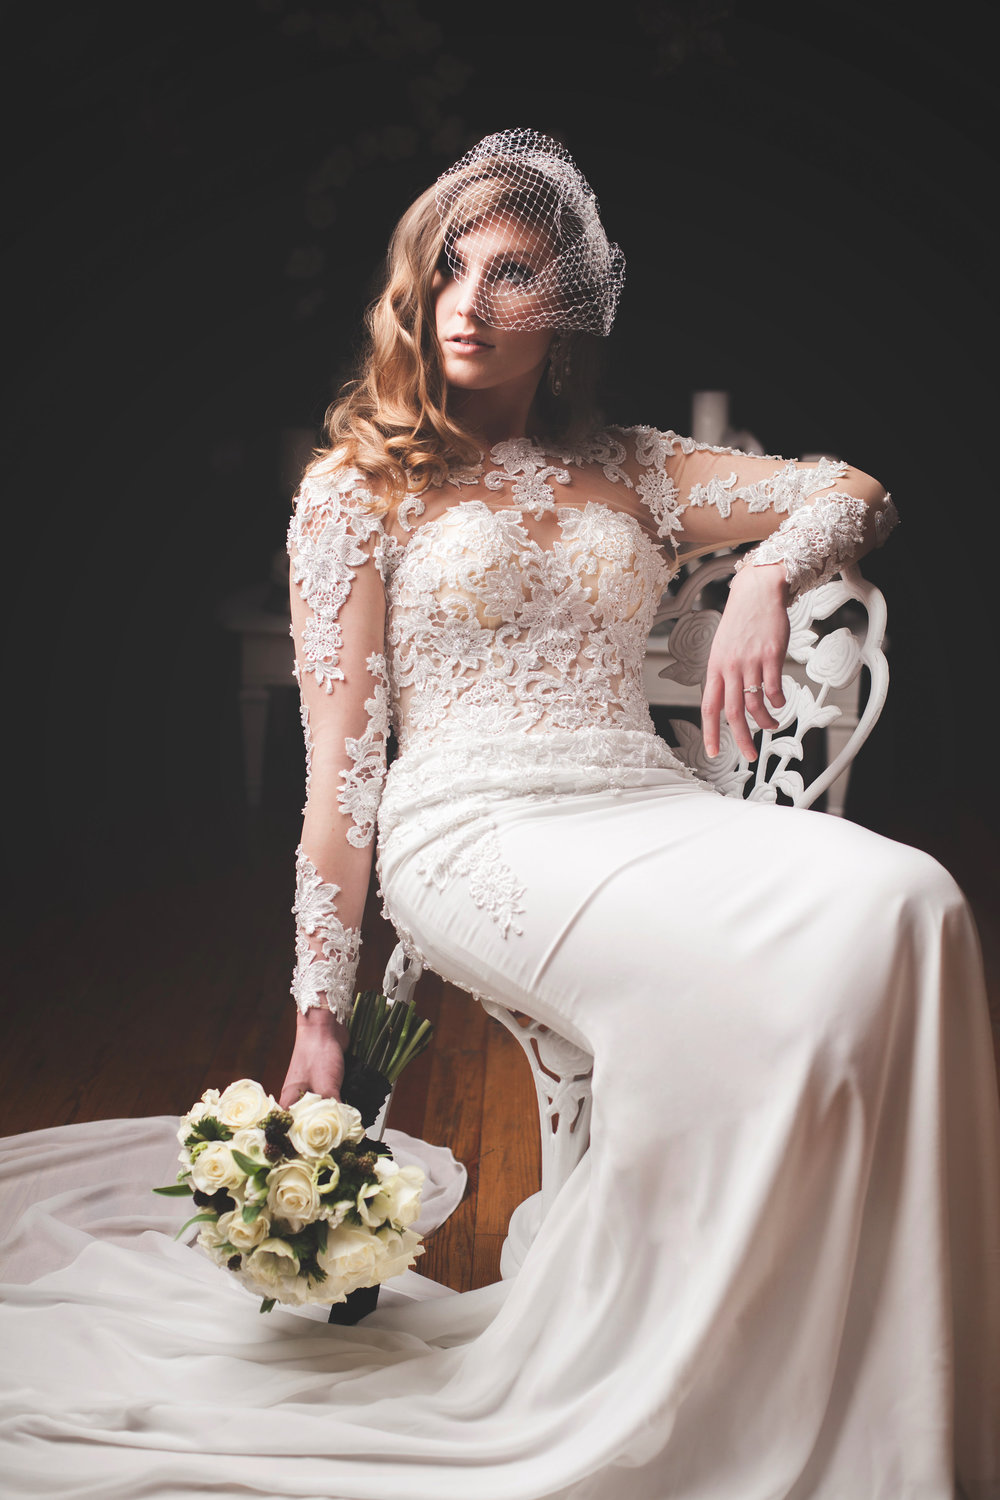 White lace long sleeved wedding gown